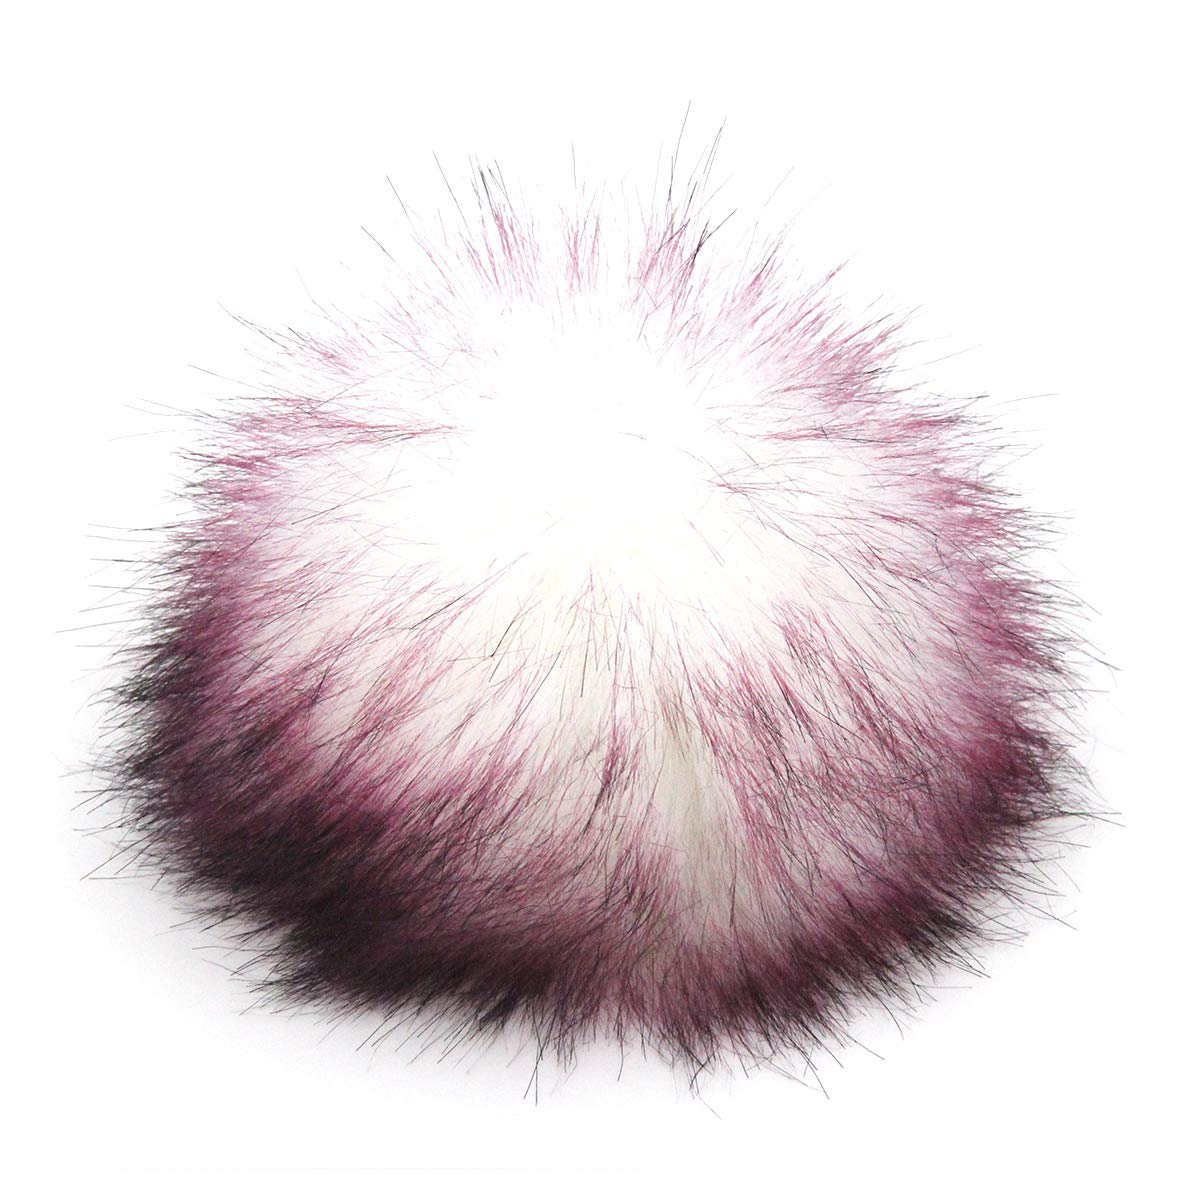 Furling Pompoms Faux Fox Fur Fluffy Removable Pom Poms Ball for Knitting Hats Mixed Colors 12pcs 4.7 Inches